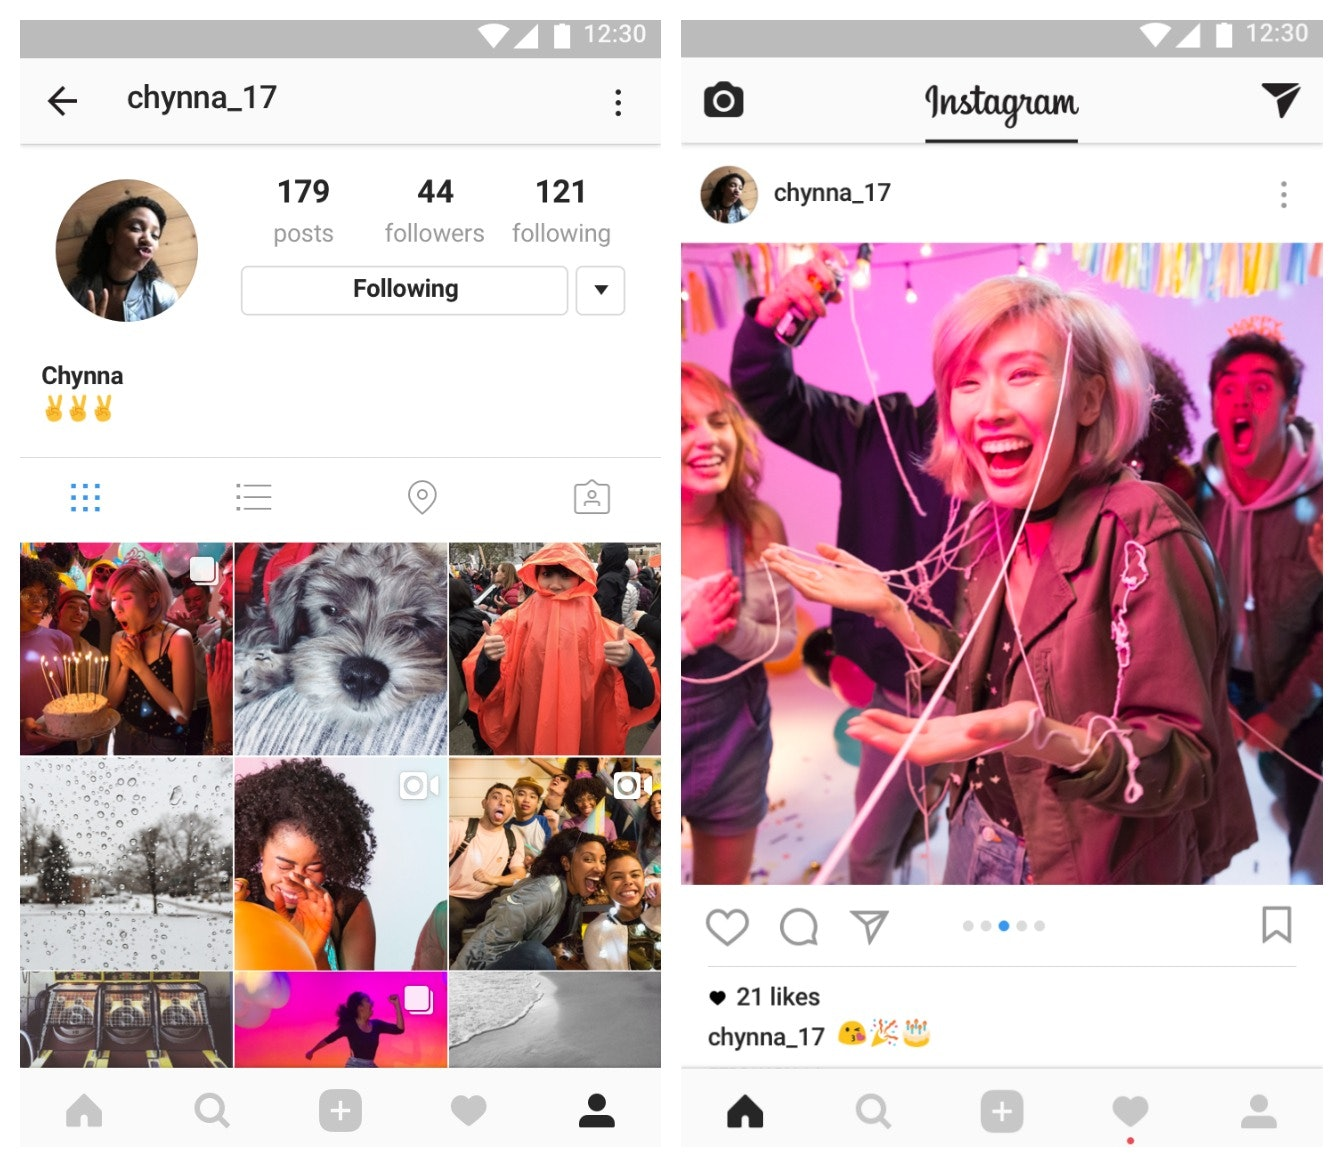 Instagram finally supports sharing multiple photos and videos in one post